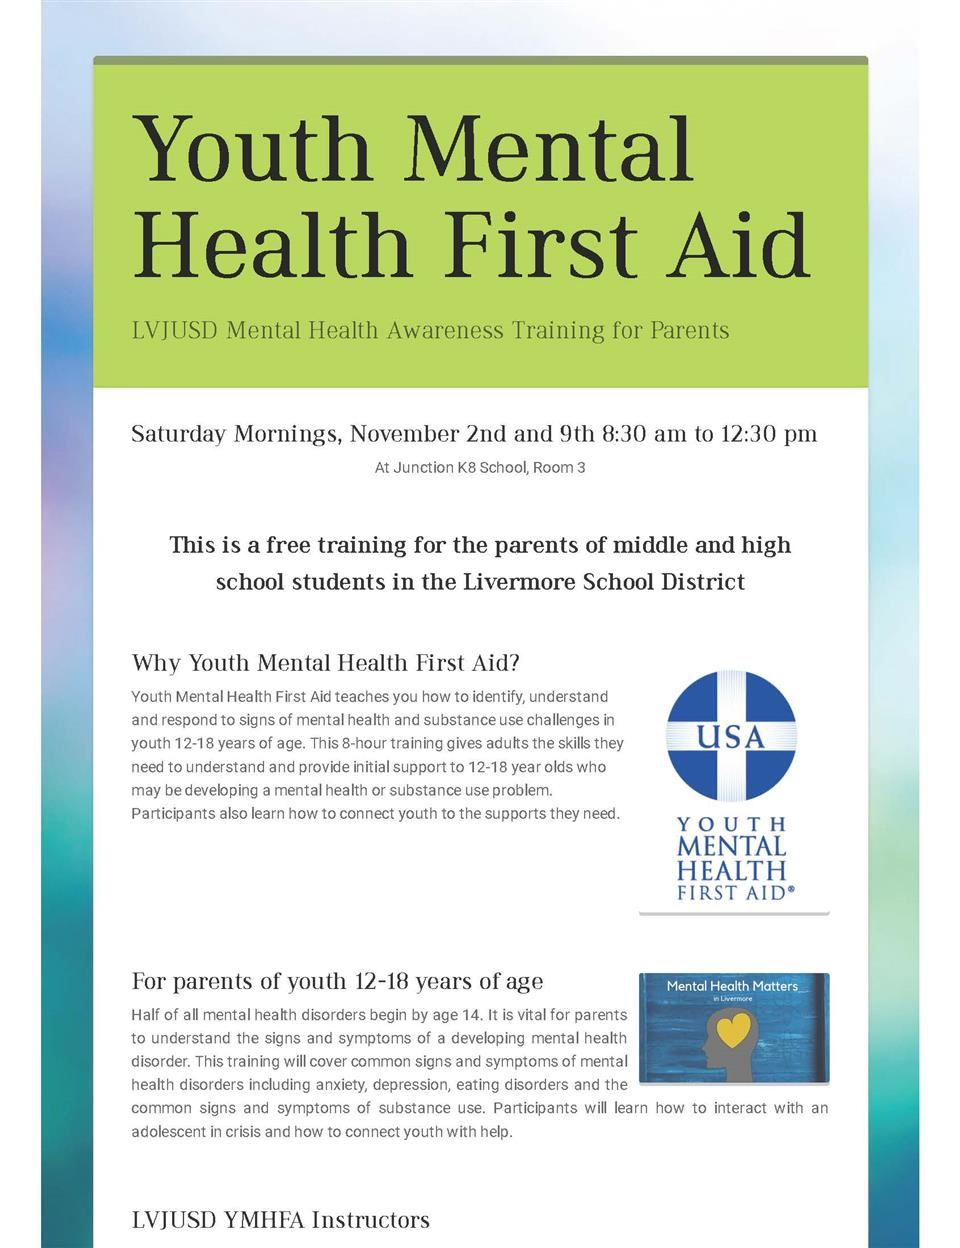 Youth Mental Health First Aid page 1 of 2